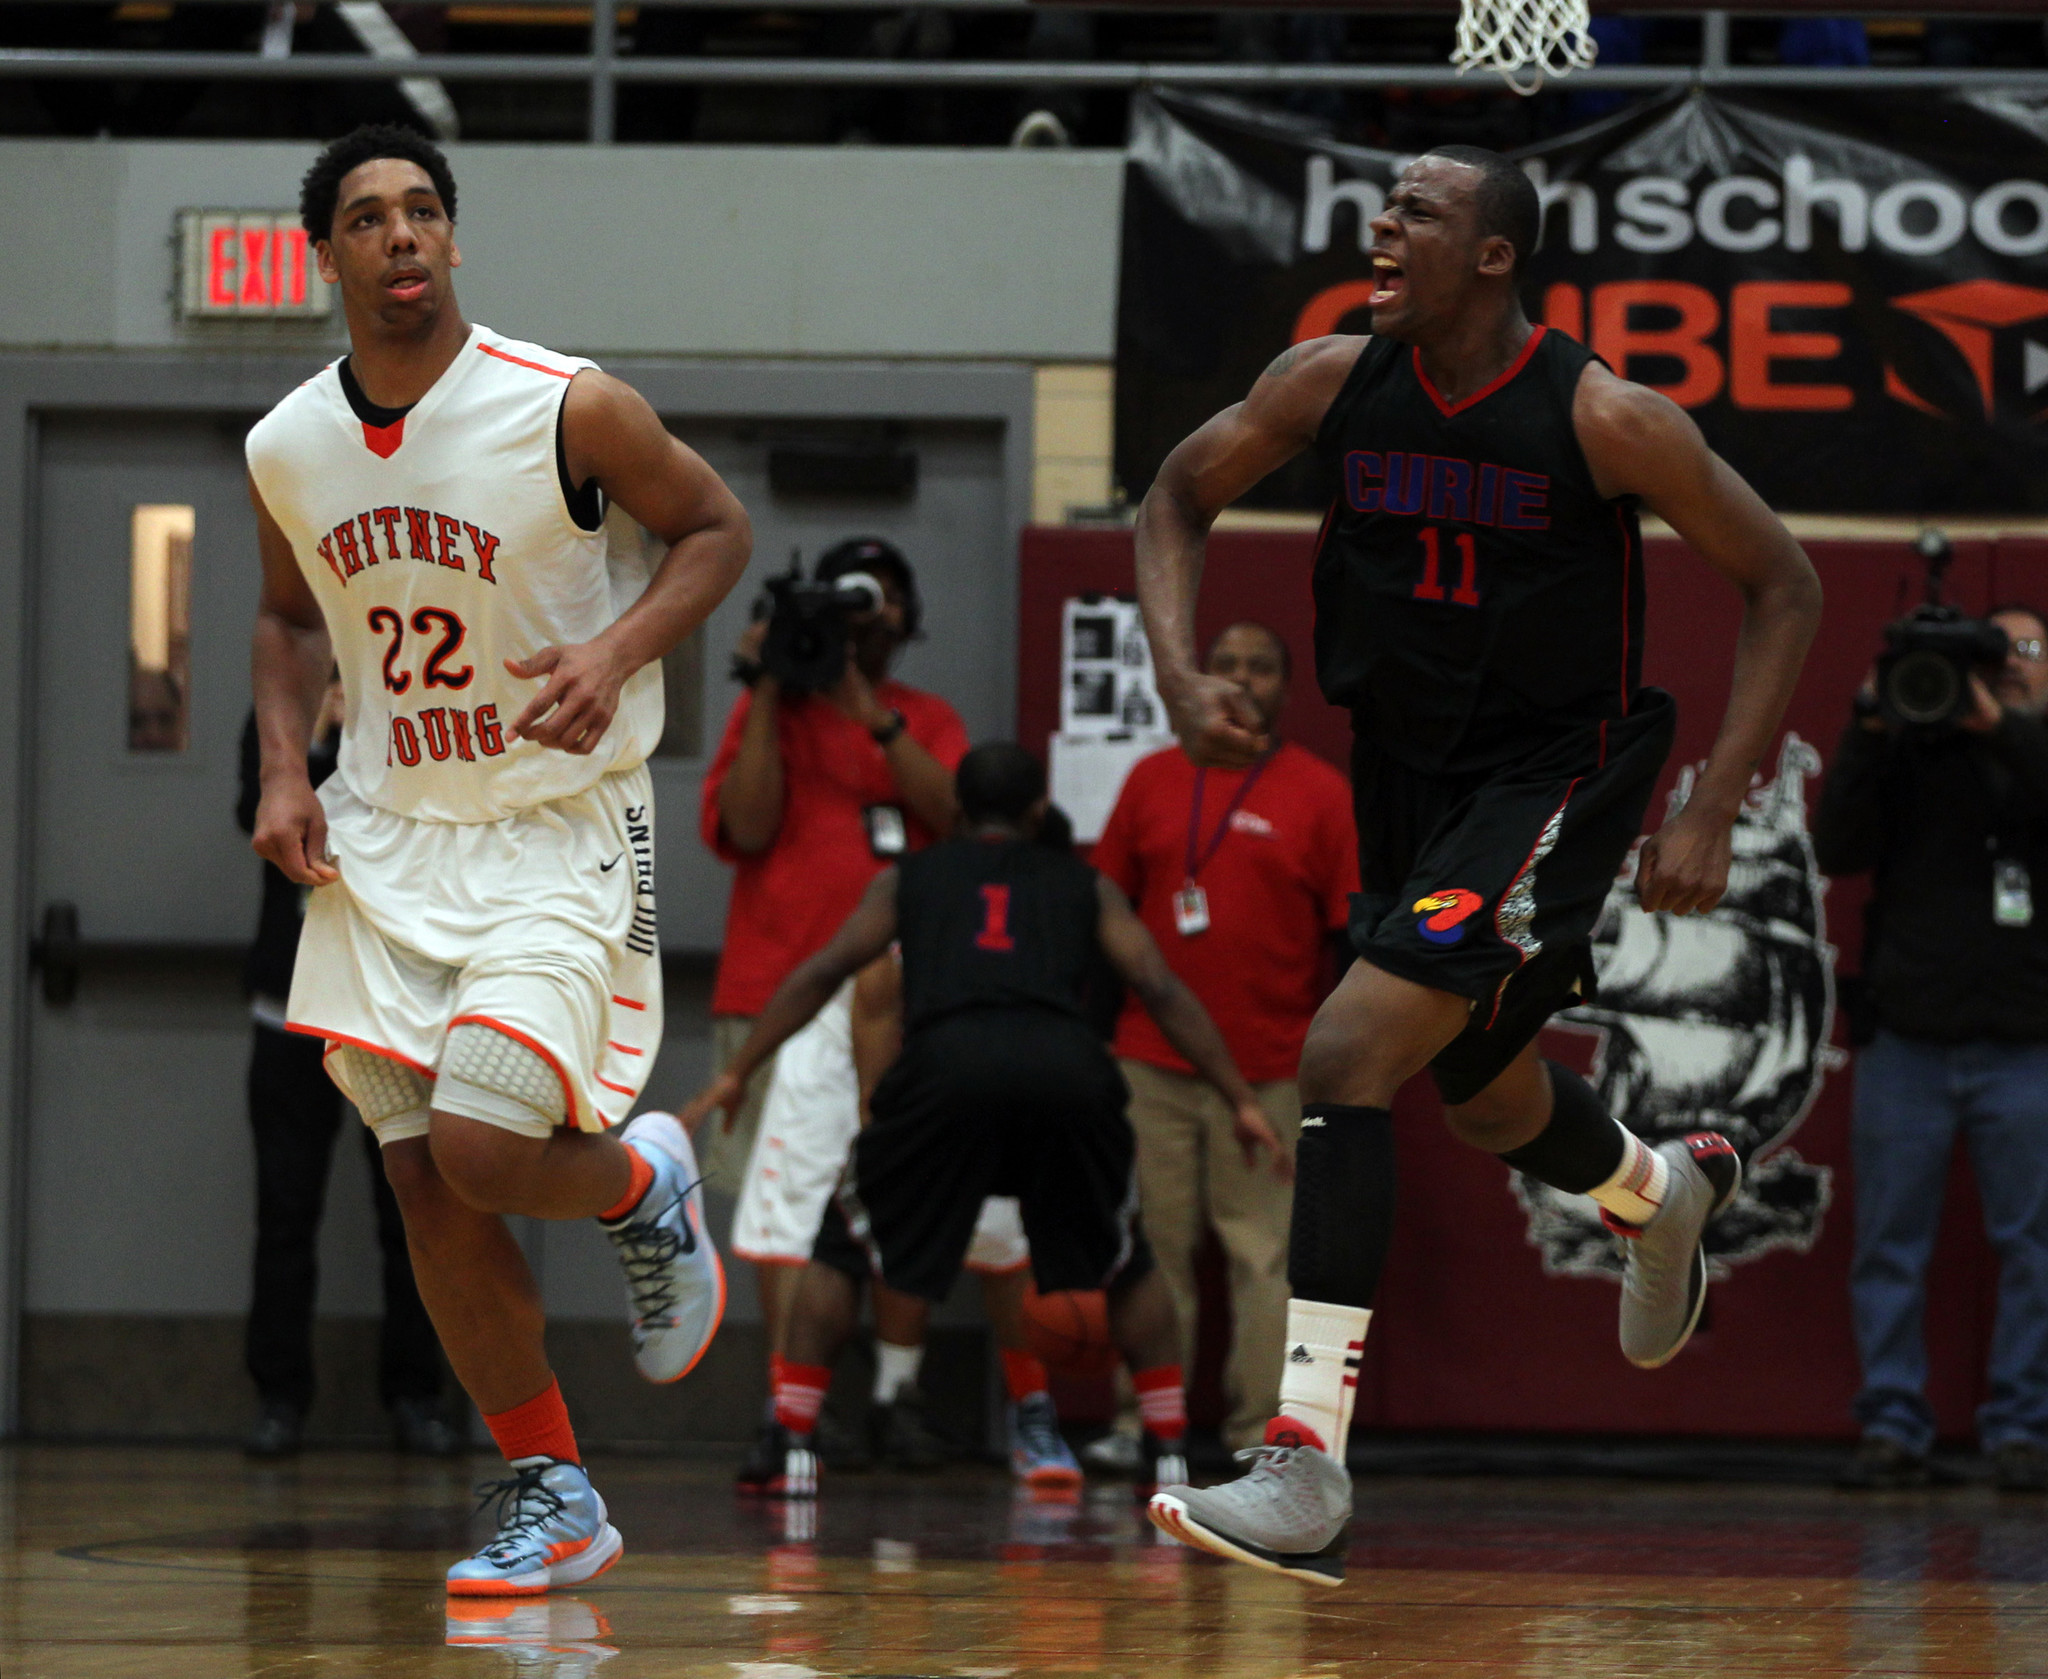 100 best Illinois high school basketball players ever Chicago